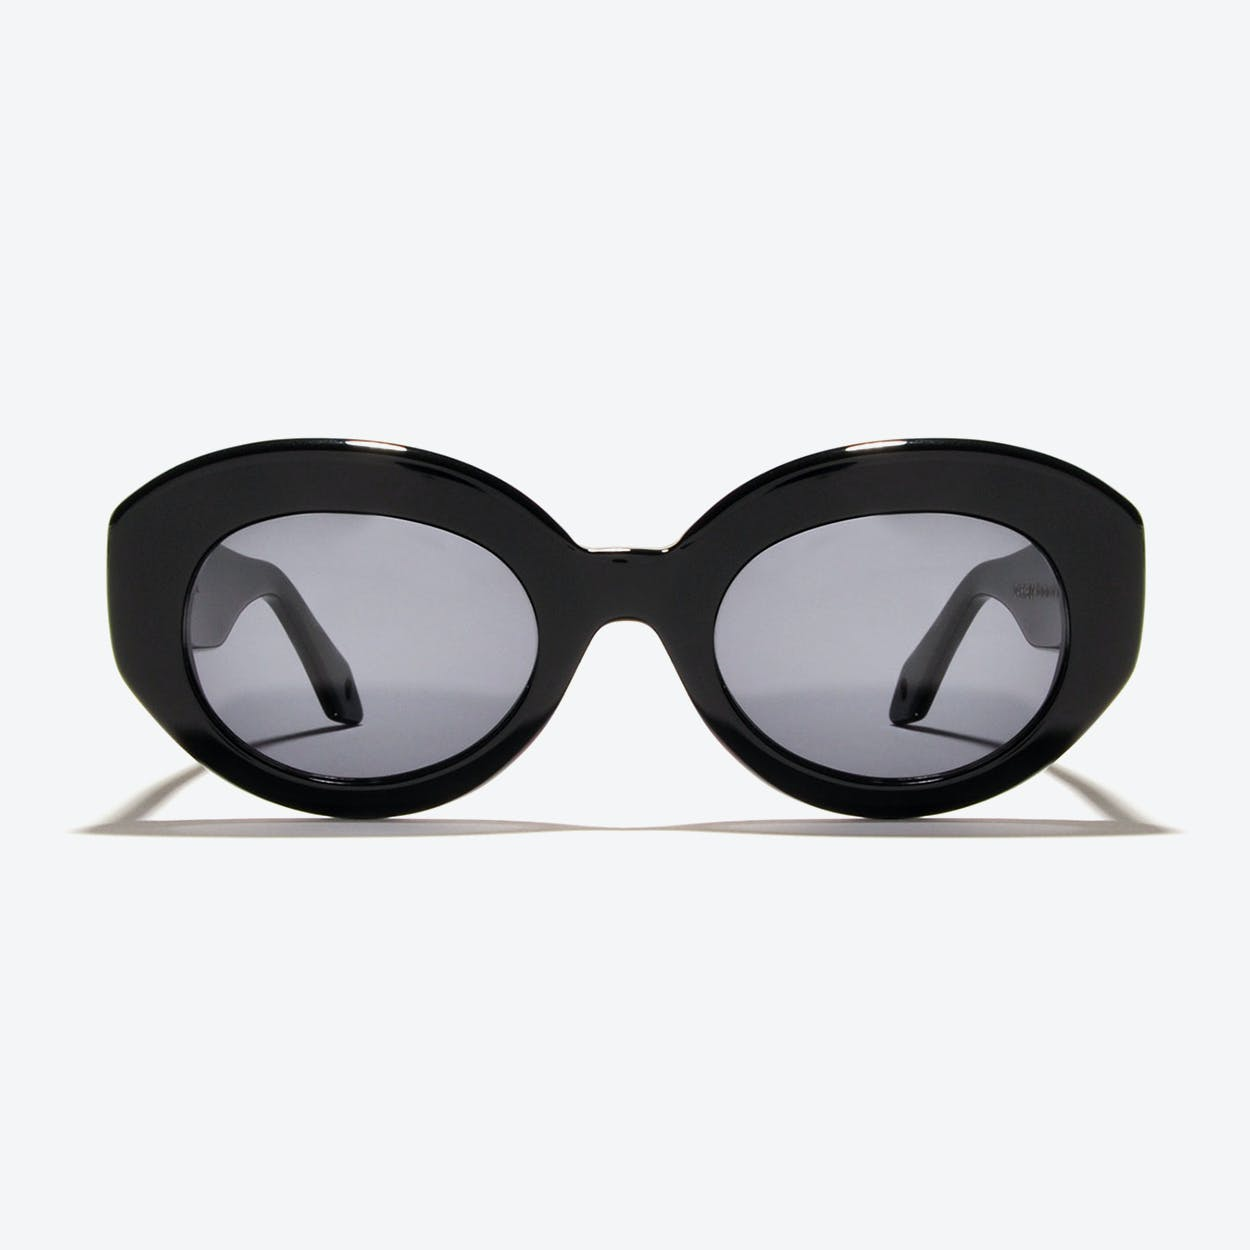 Ophelia Sunglasses in Black